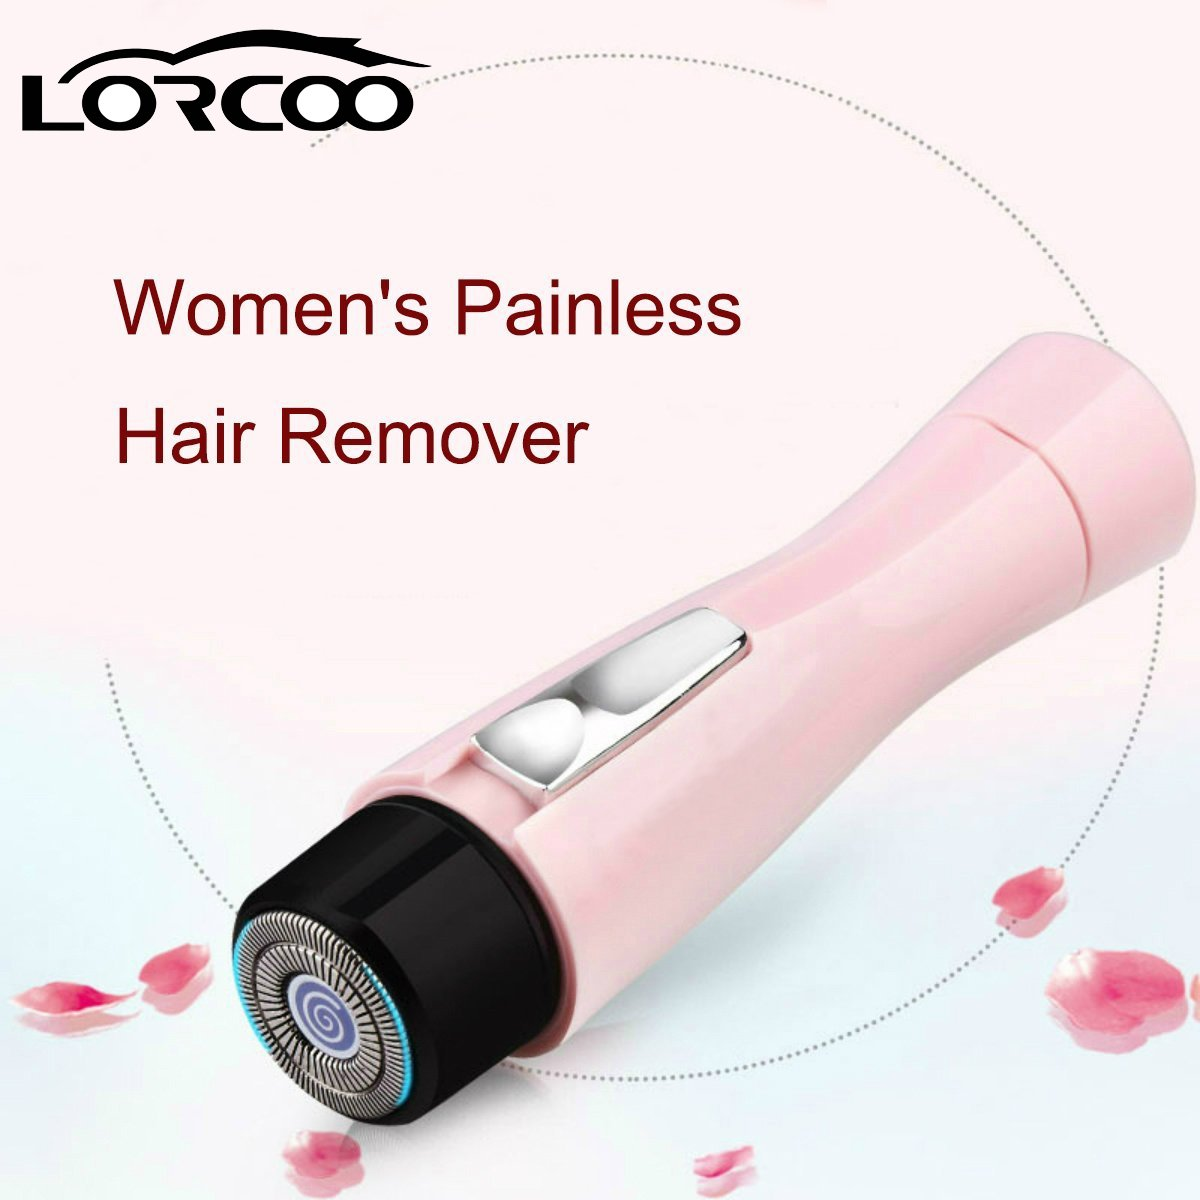 Lorcoo Women's Painless Hair Remover, Lady Electric Shaver Body Facial Shaver Perfect for Face/Leg/Hand/Bikini/Armpit